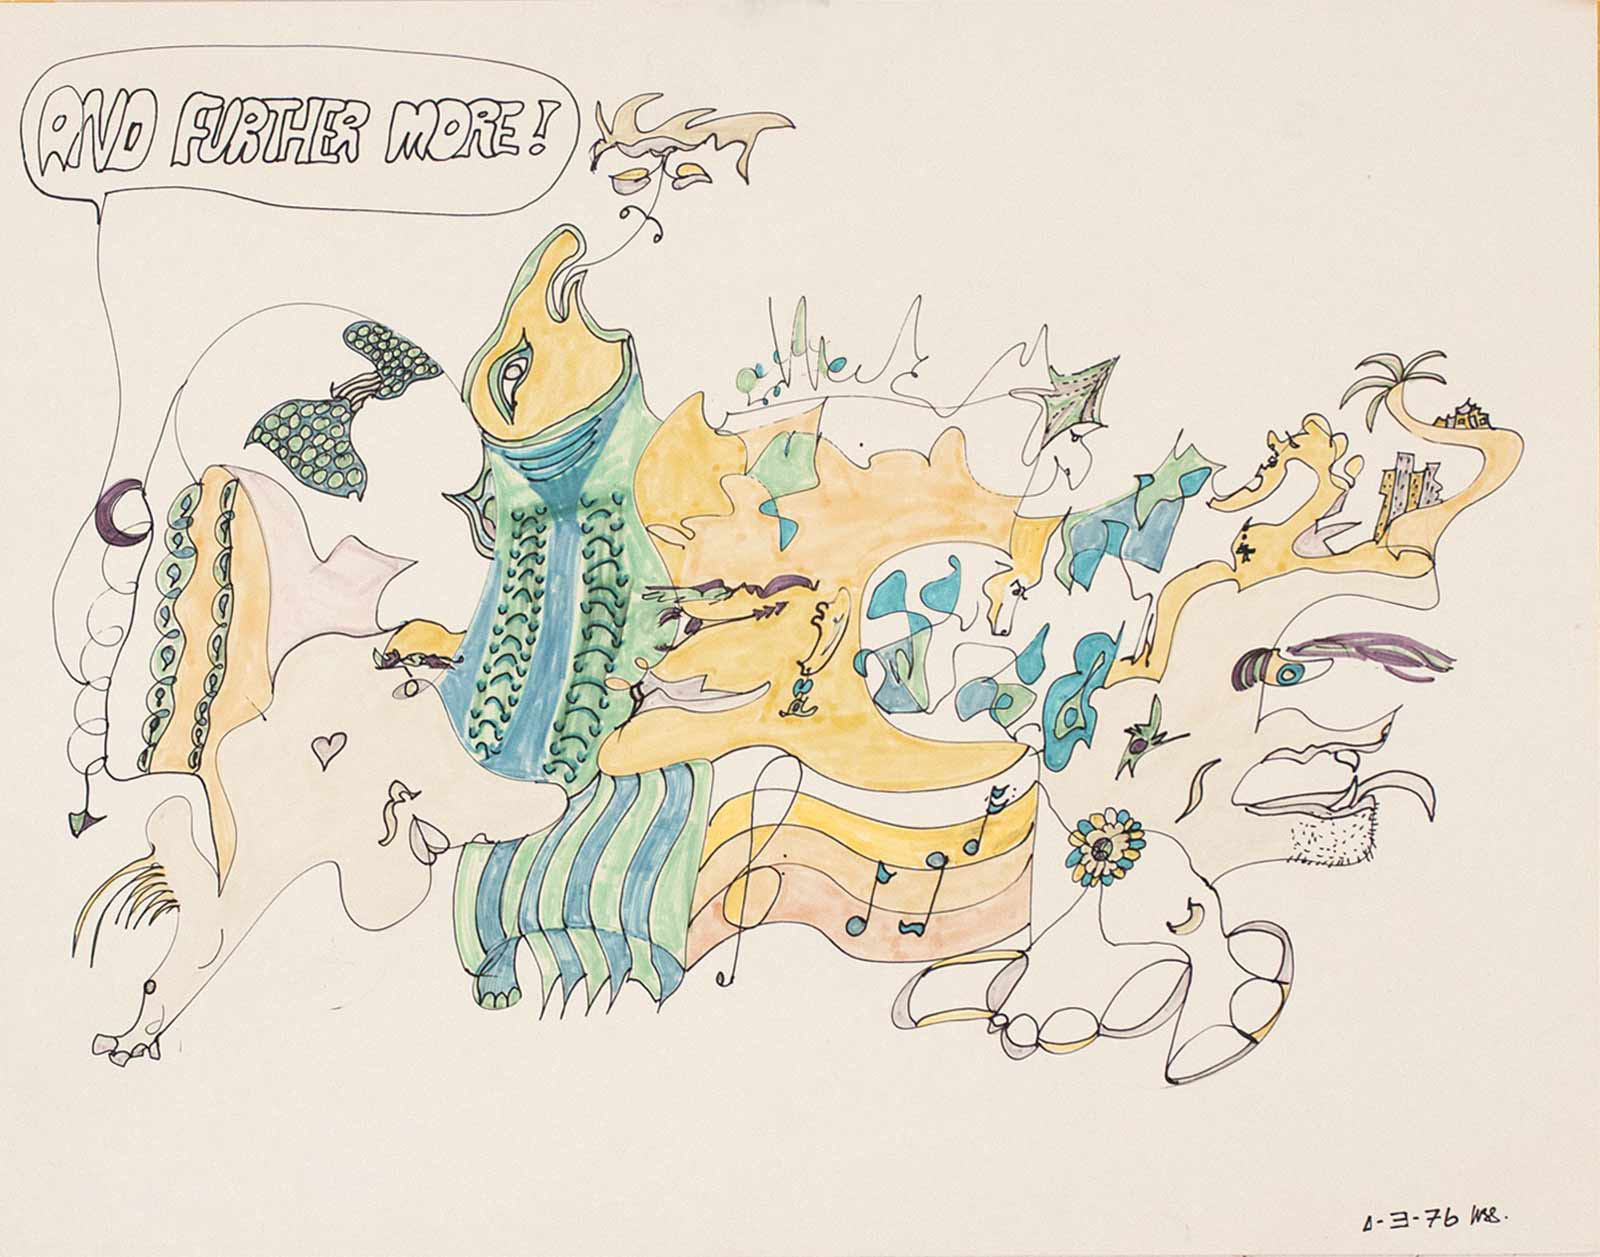 1972dcs-MBS-03_1976-And-Further-More-marker-on-paper_ks1ntg.jpg